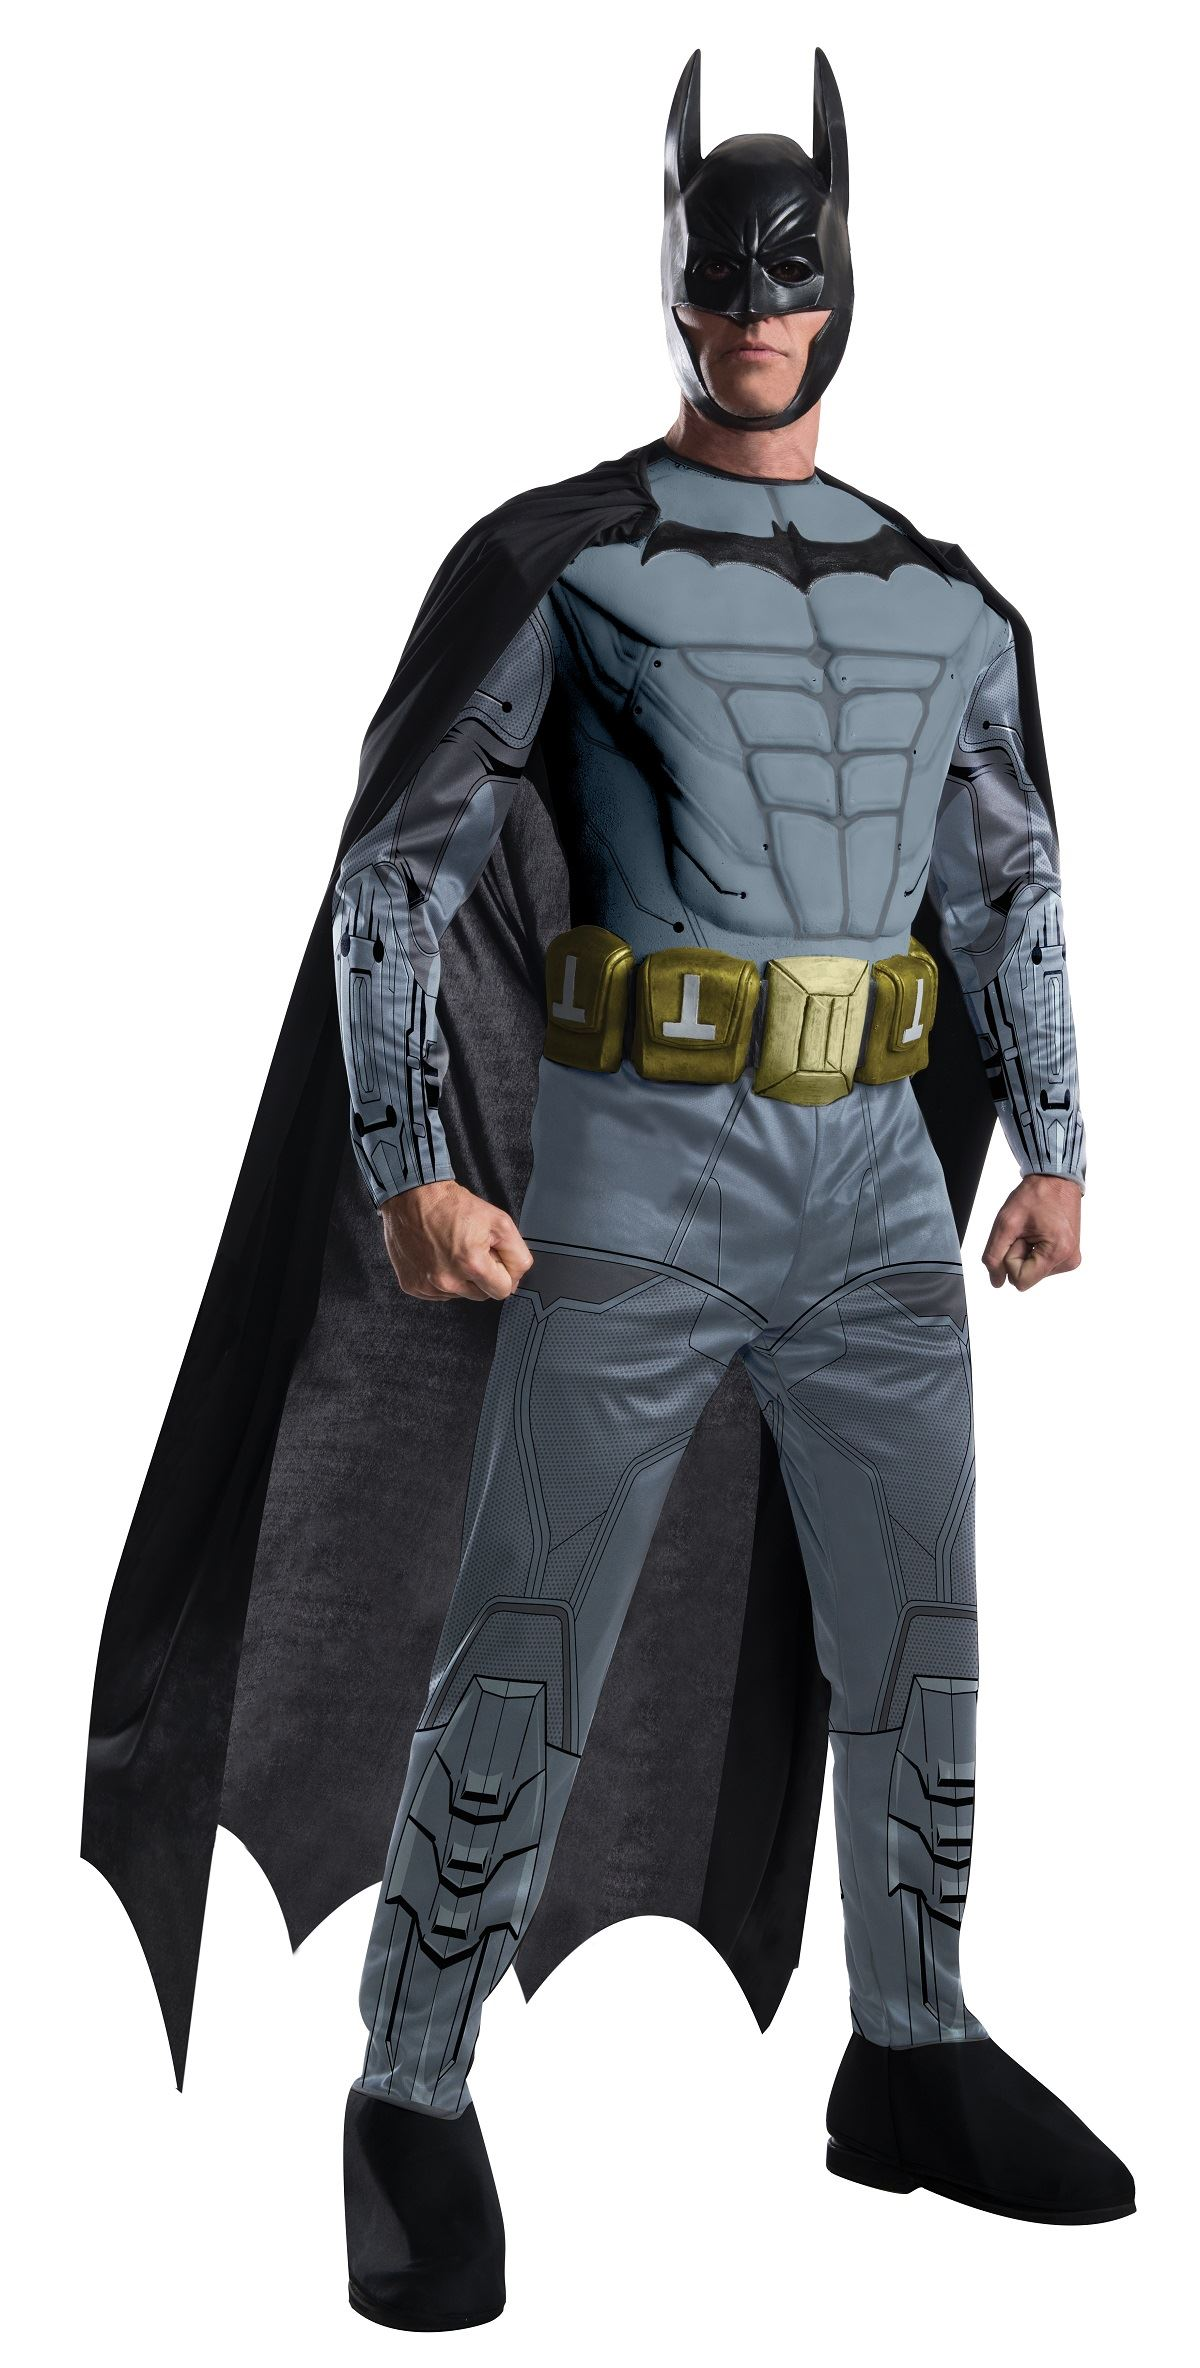 Adult Batman Arkham Batman Deluxe Costume  sc 1 st  The Costume Land & Adult Batman Arkham Batman Deluxe Costume | $63.99 | The Costume Land